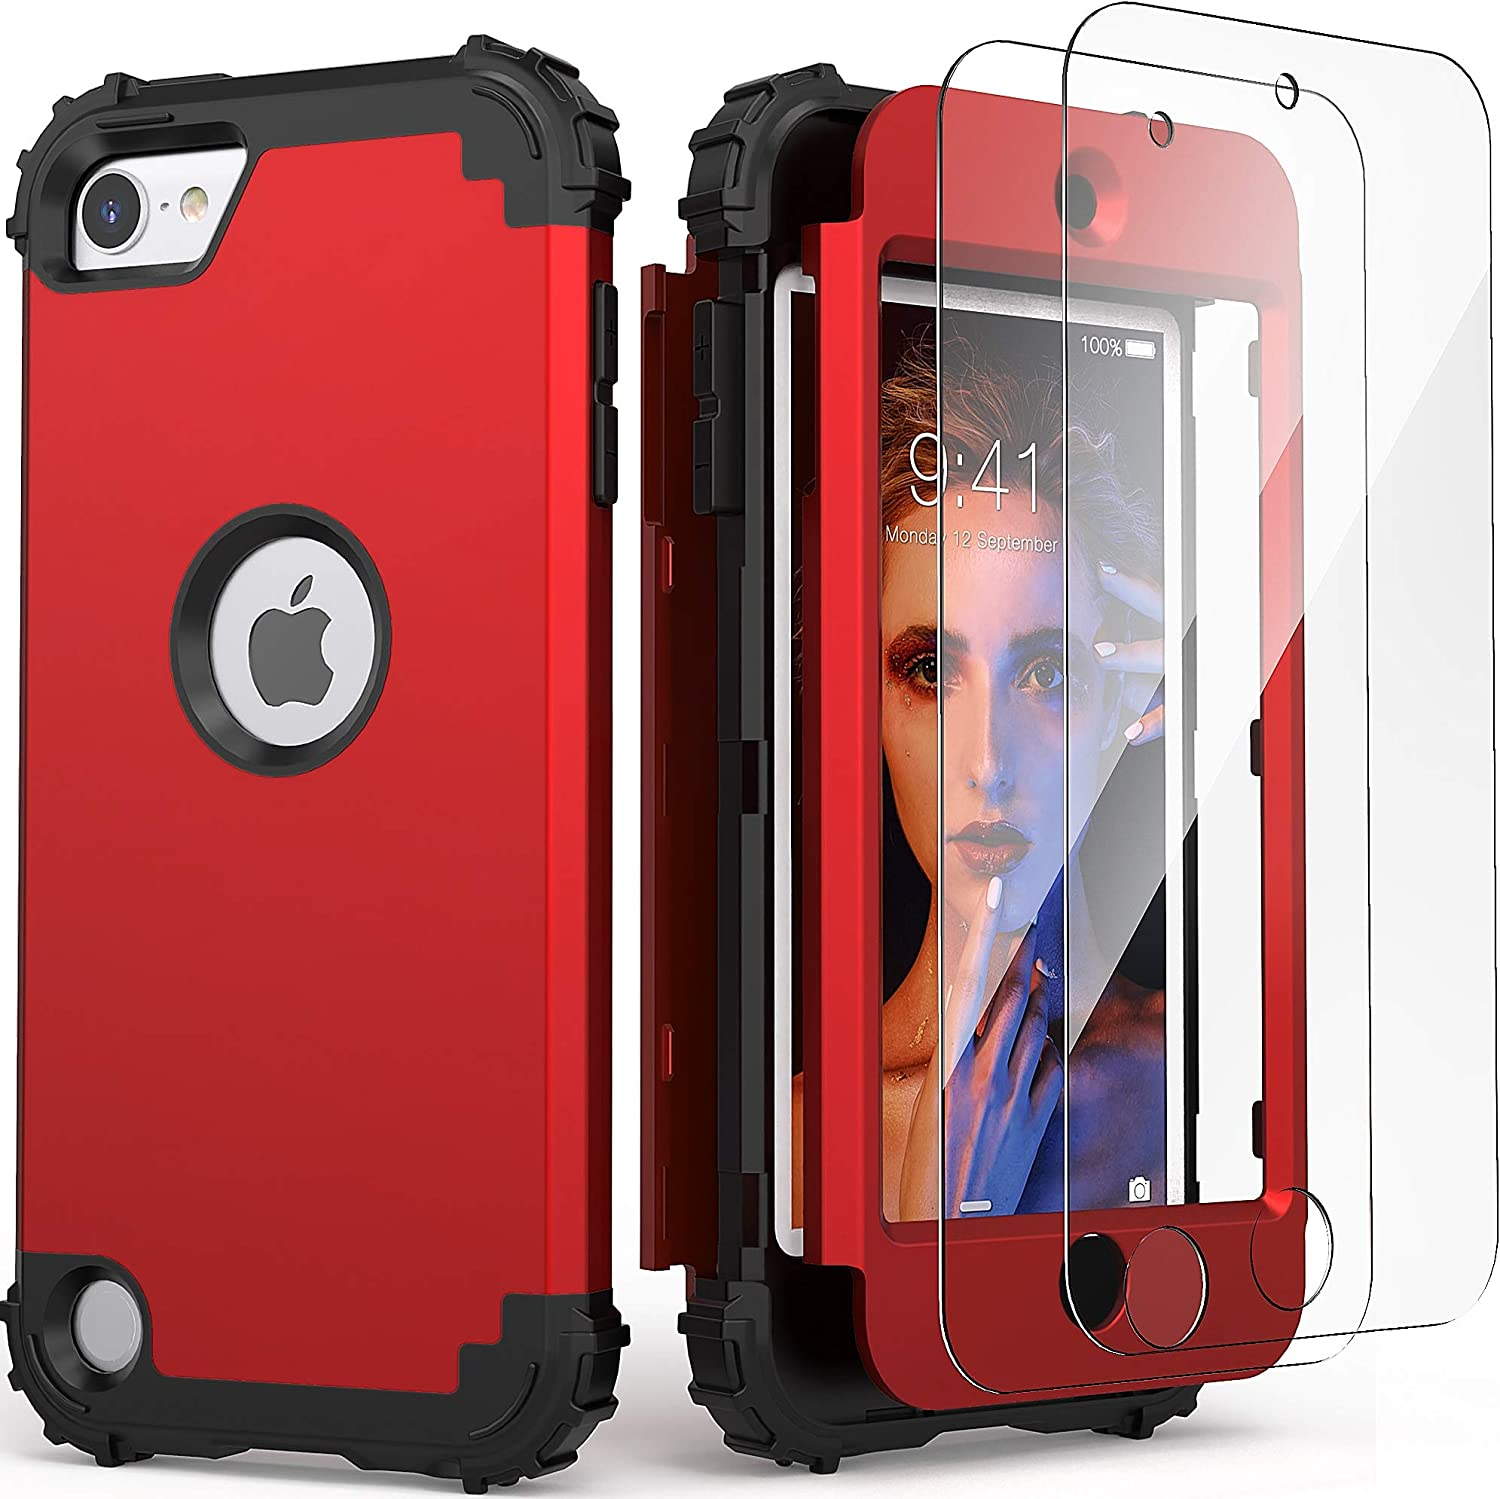 iPod Touch 7th Generation Case with 2 Screen Protectors, IDweel Hybrid 3 in 1 Shockproof Slim Heavy Duty Hard PC Cover Soft Silicone Rugged Bumper Full Body Case for iPod Touch 5/6/7th Gen, Red